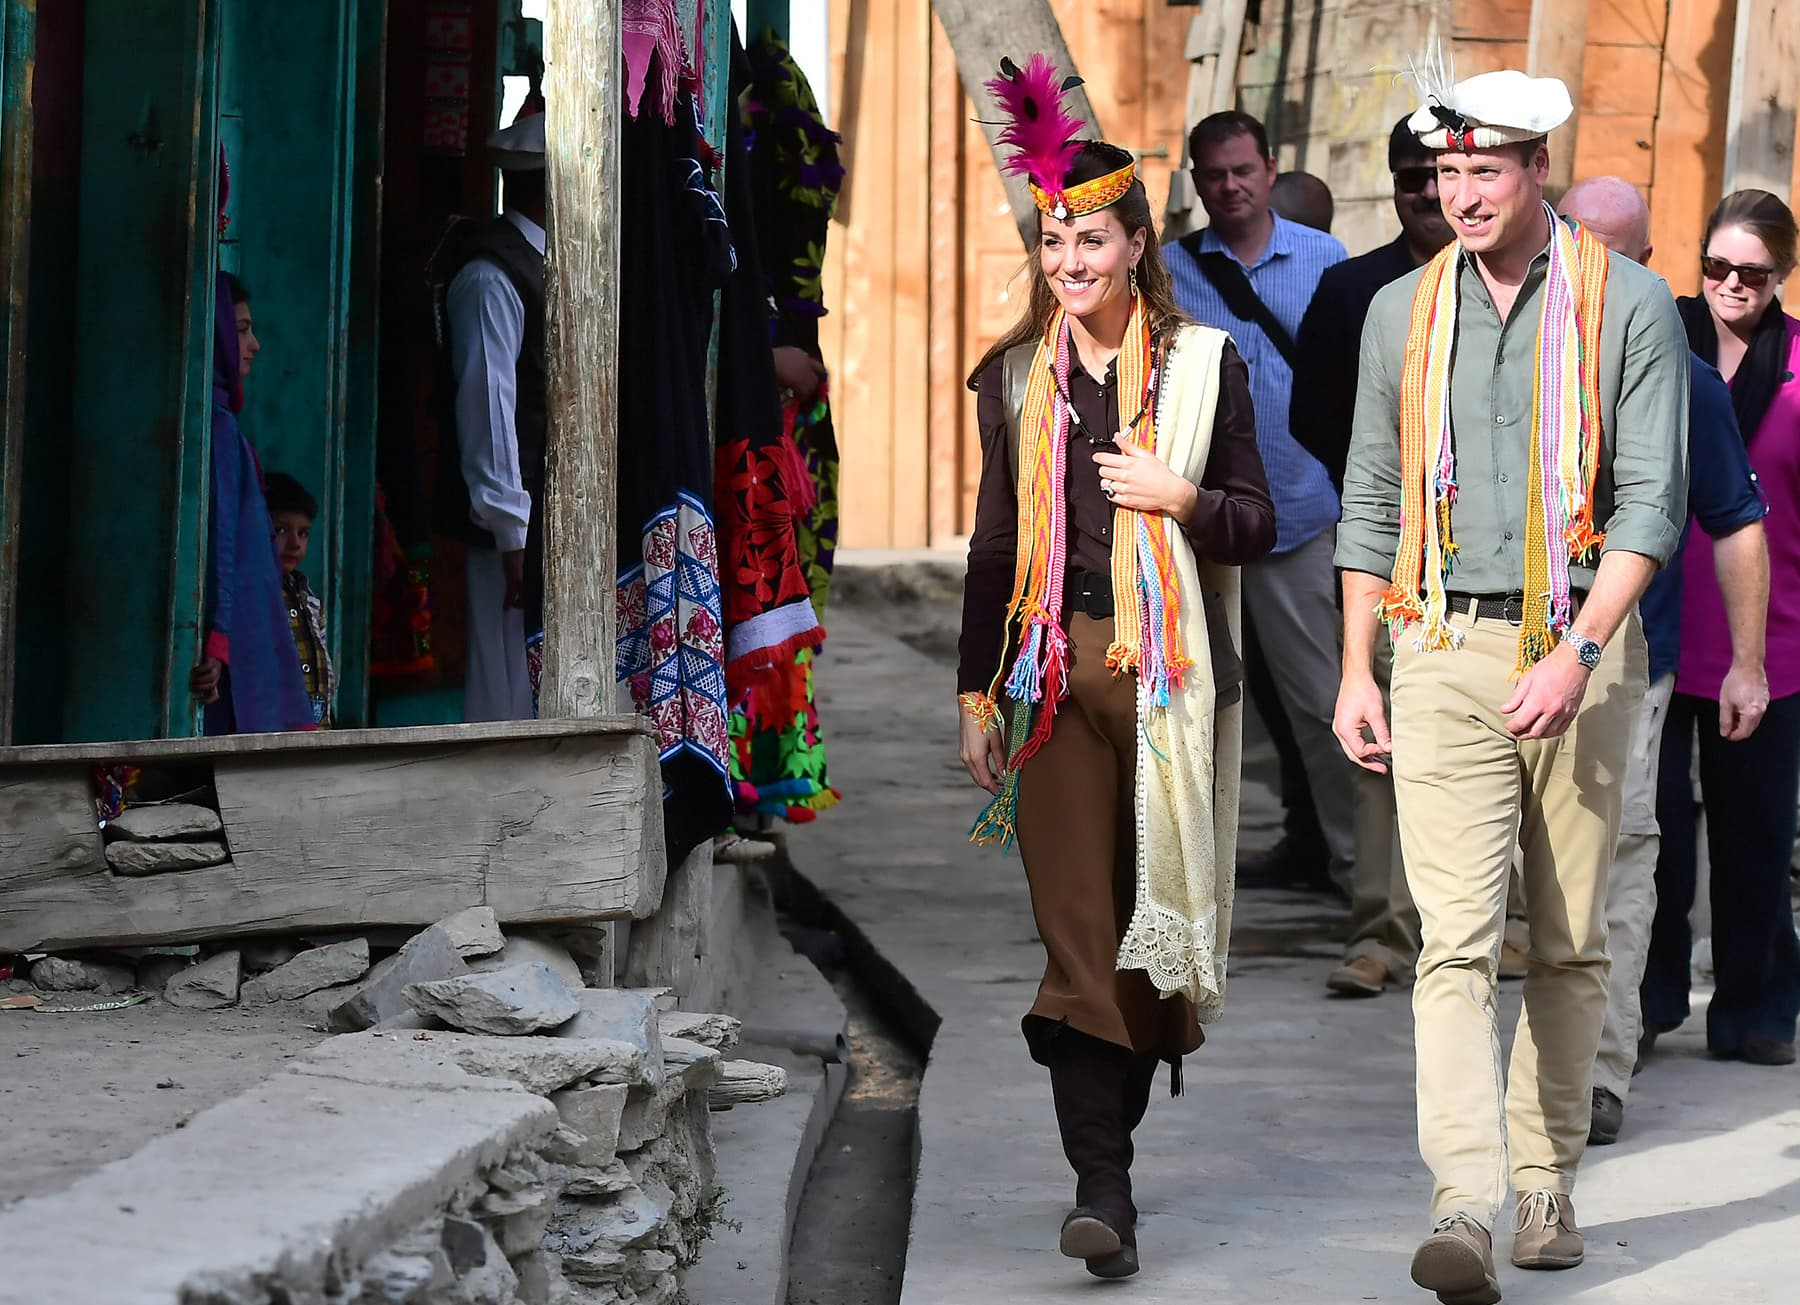 Prince William and Catherine, Duchess of Cambridge visit a settlement of the Kalash people in Chitral. — Reuters